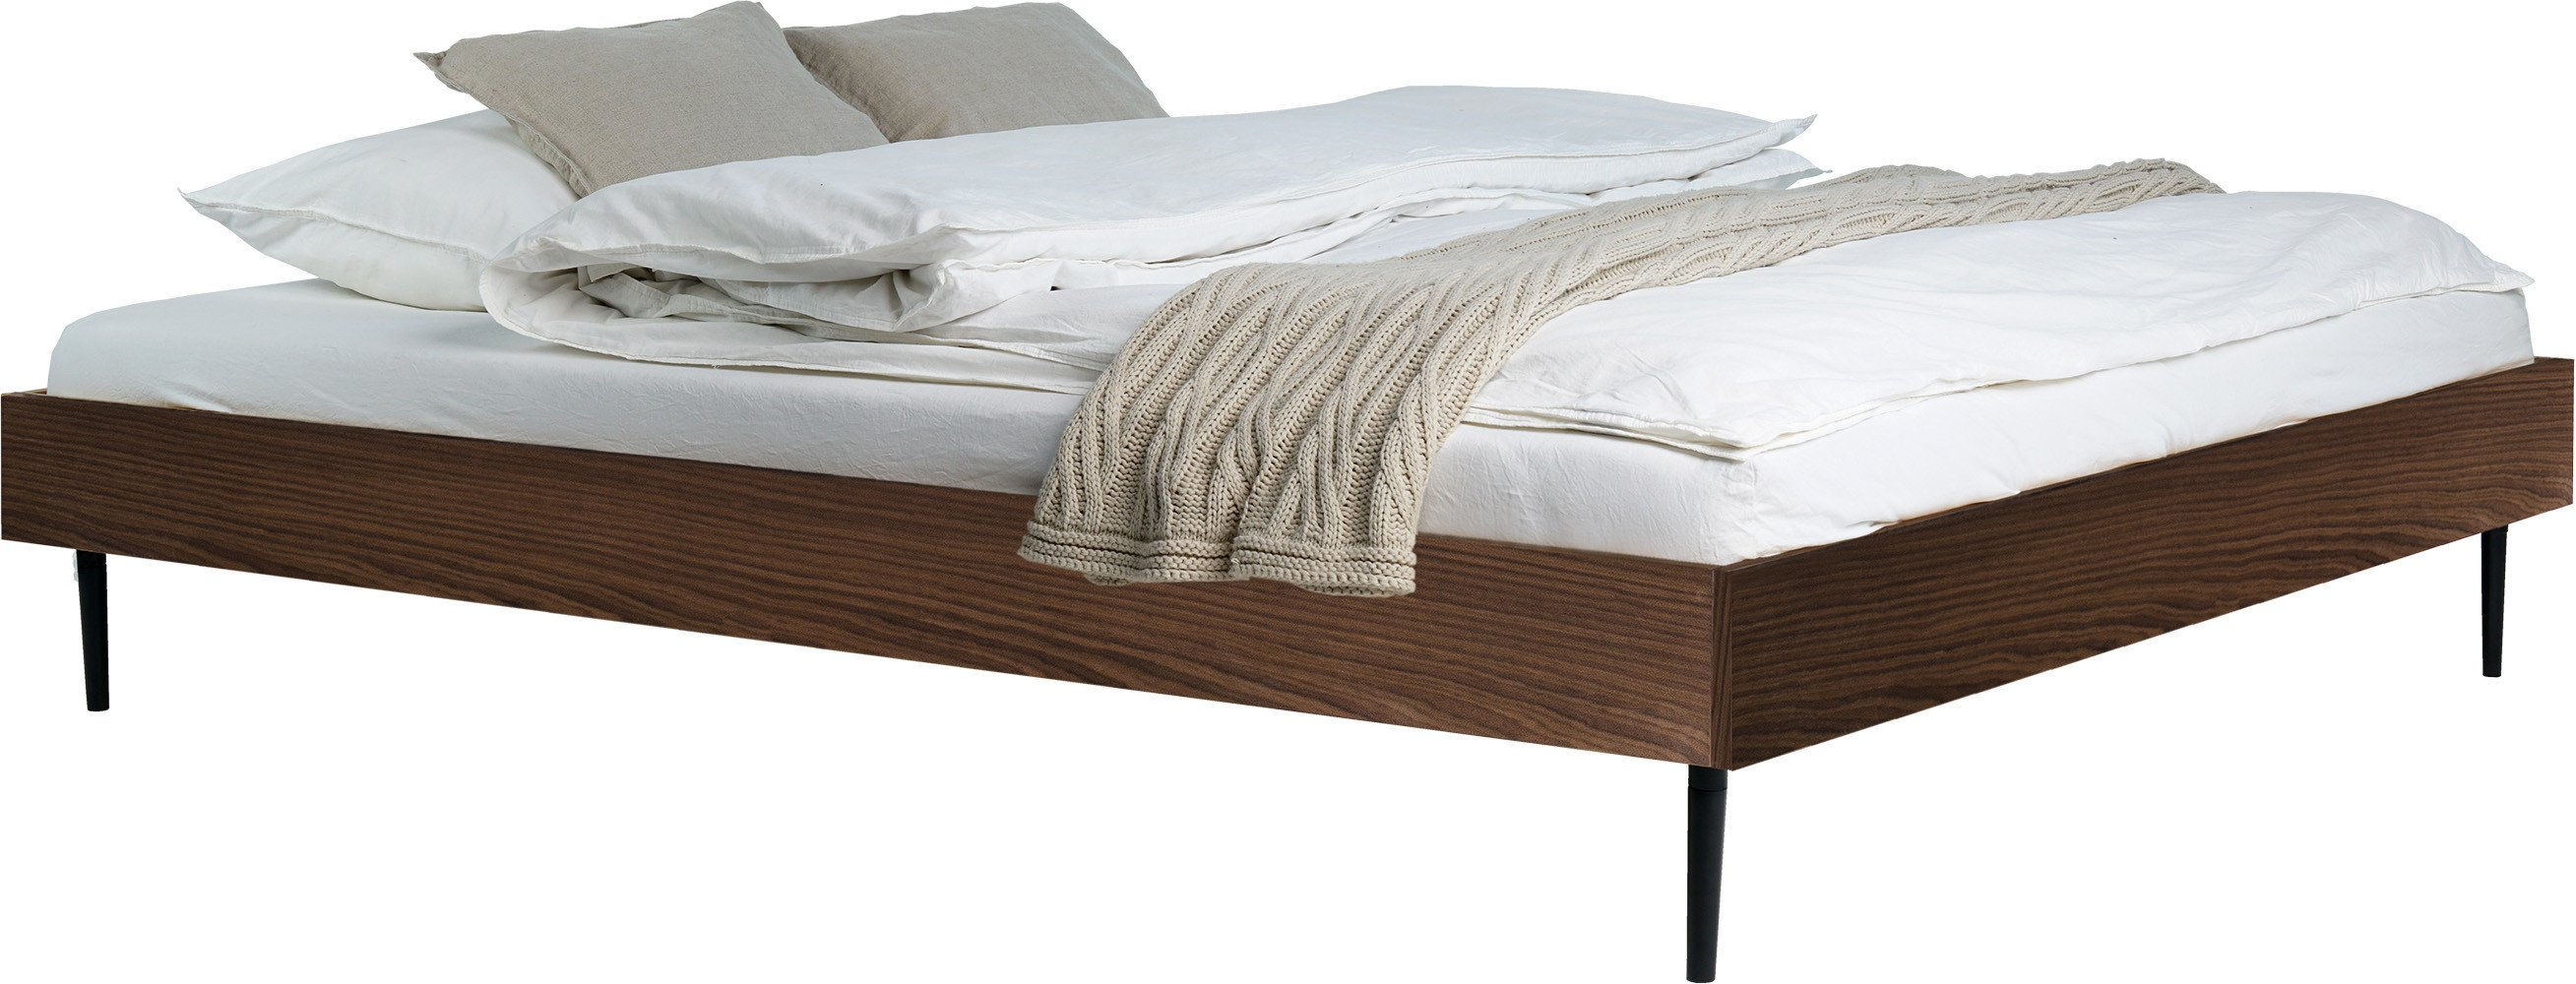 Streiko Bed 180x200 Walnut, noo.ma